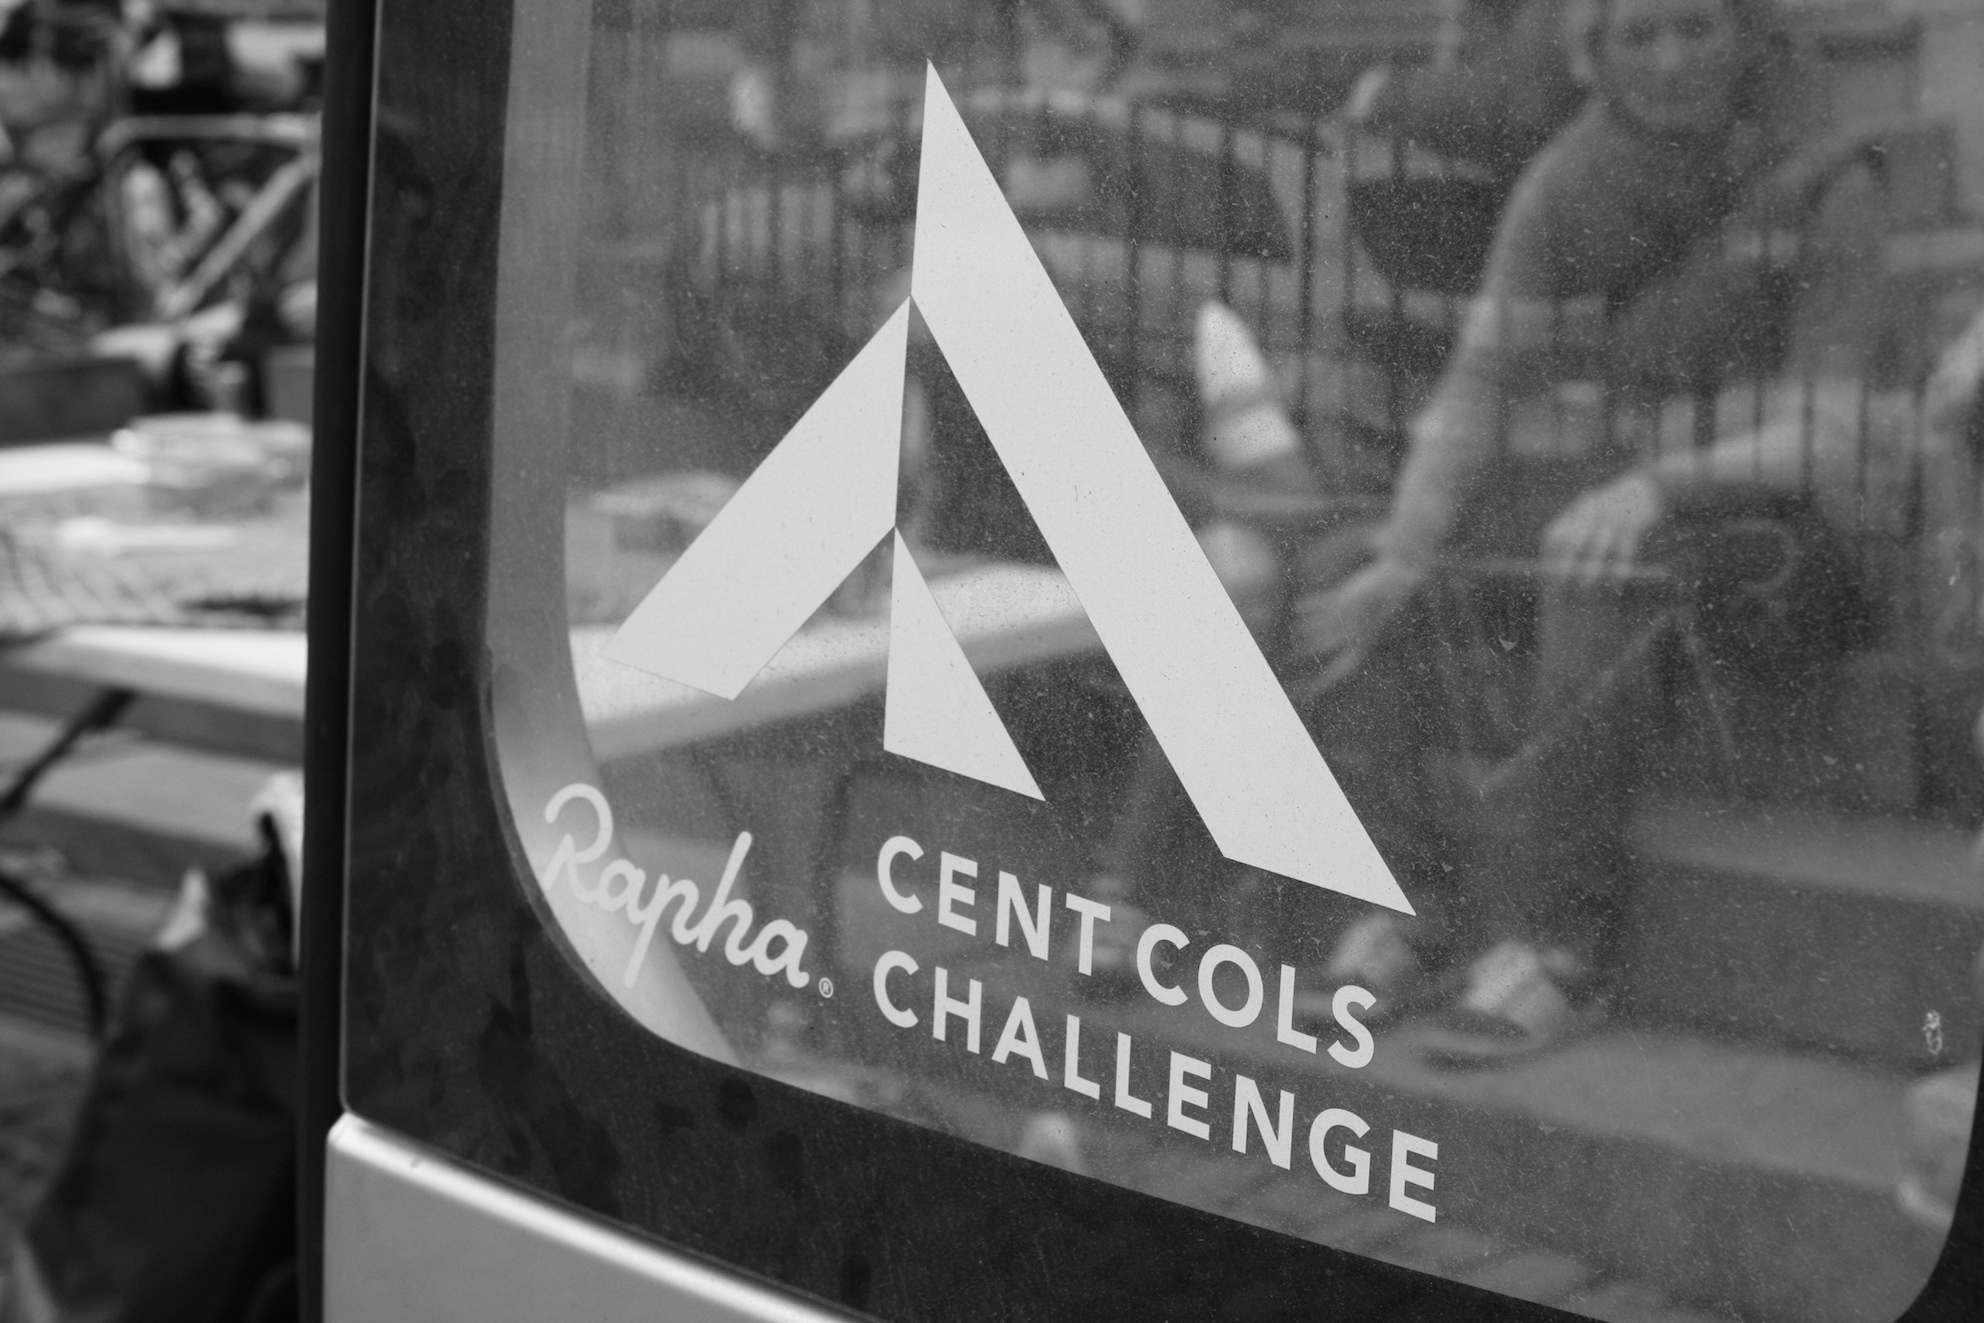 What is the Cent Cols Challenge?